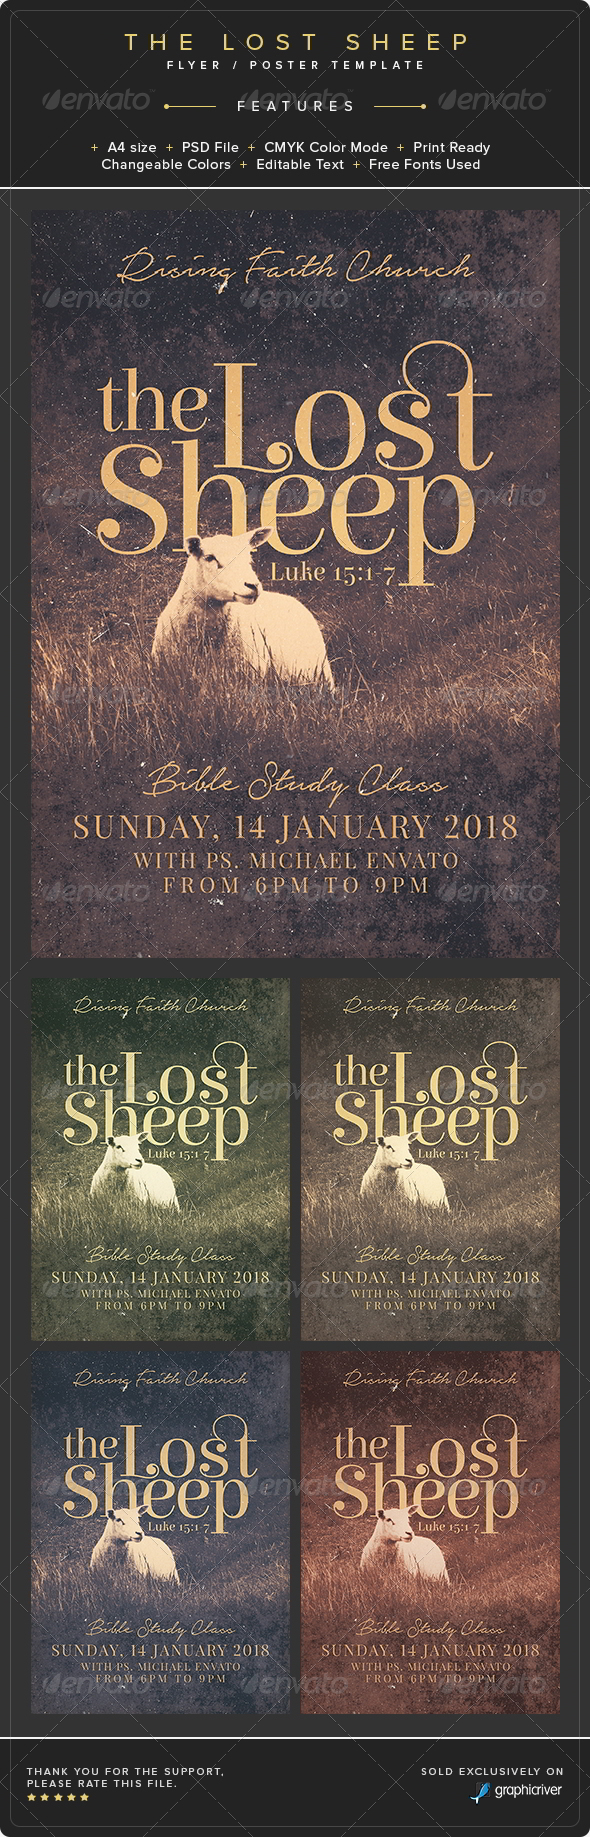 GraphicRiver The Lost Sheep Flyer Poster Template 8737493